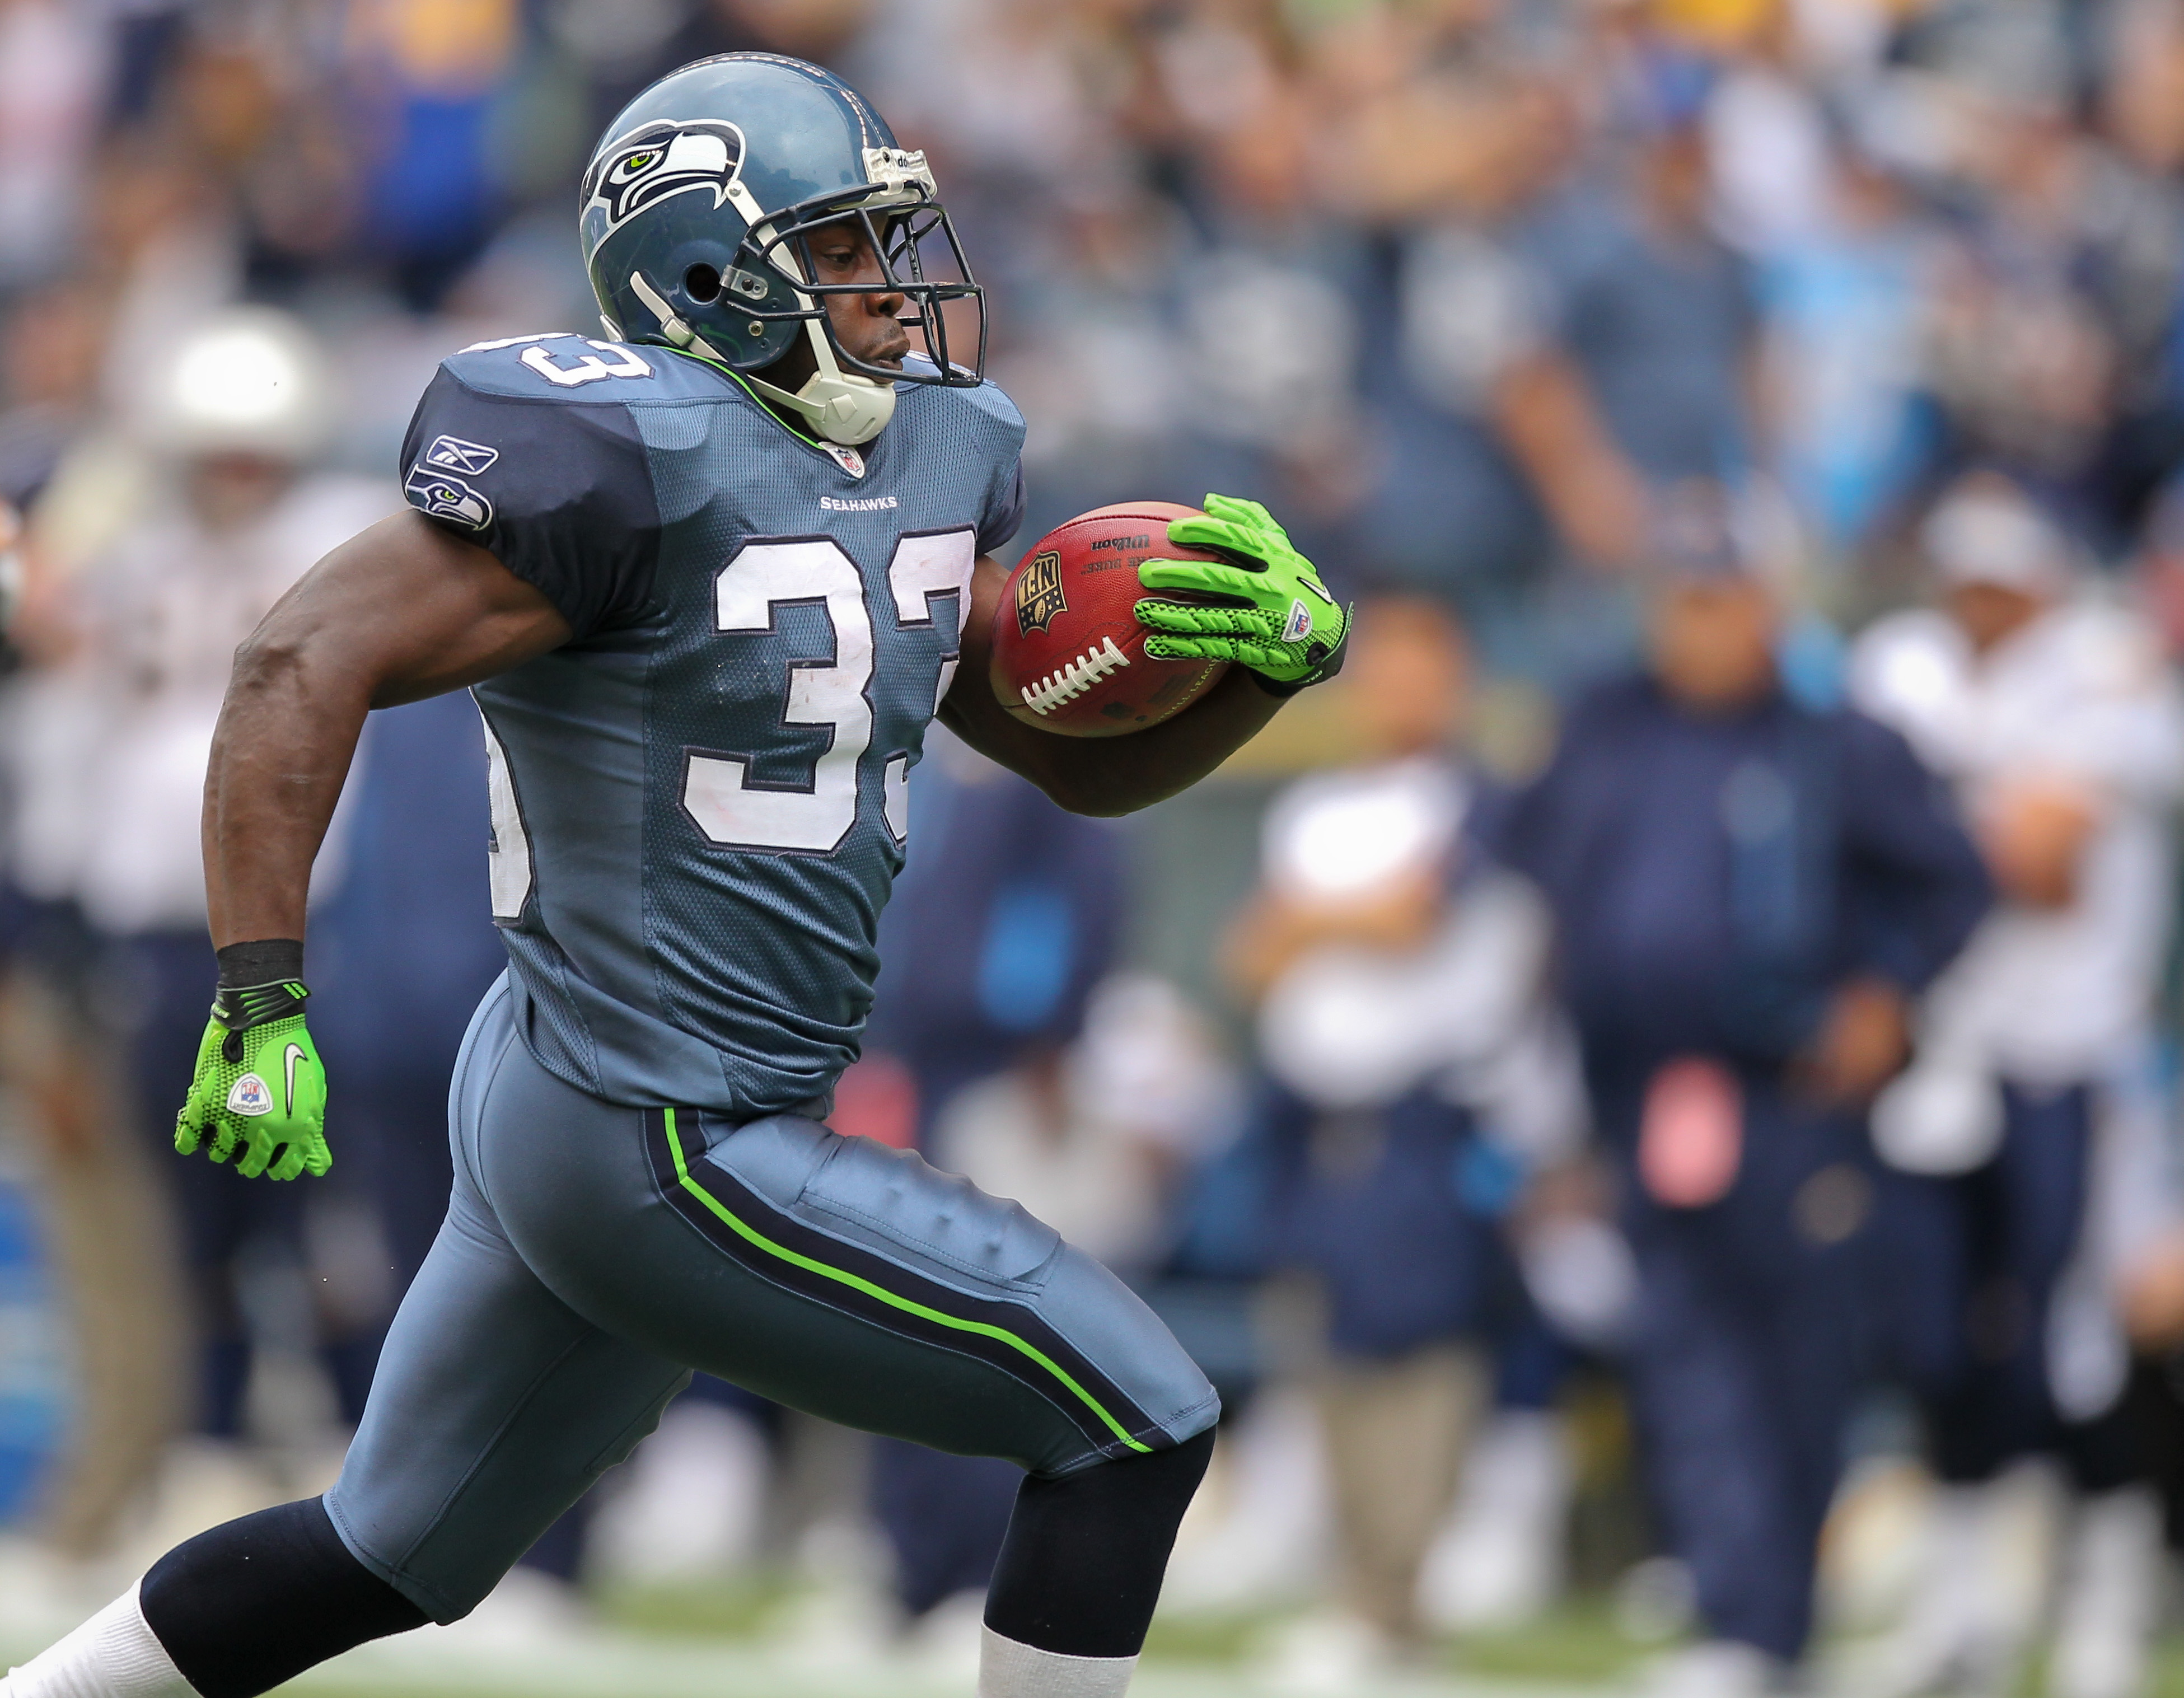 SEATTLE - SEPTEMBER 26:  Kick returner Leon Washington #33 of the Seattle Seahawks rushes 101 yards on a kickoff return for a touchdown at the start of the third quarter against the San Diego Chargers at Qwest Field on September 26, 2010 in Seattle, Washi